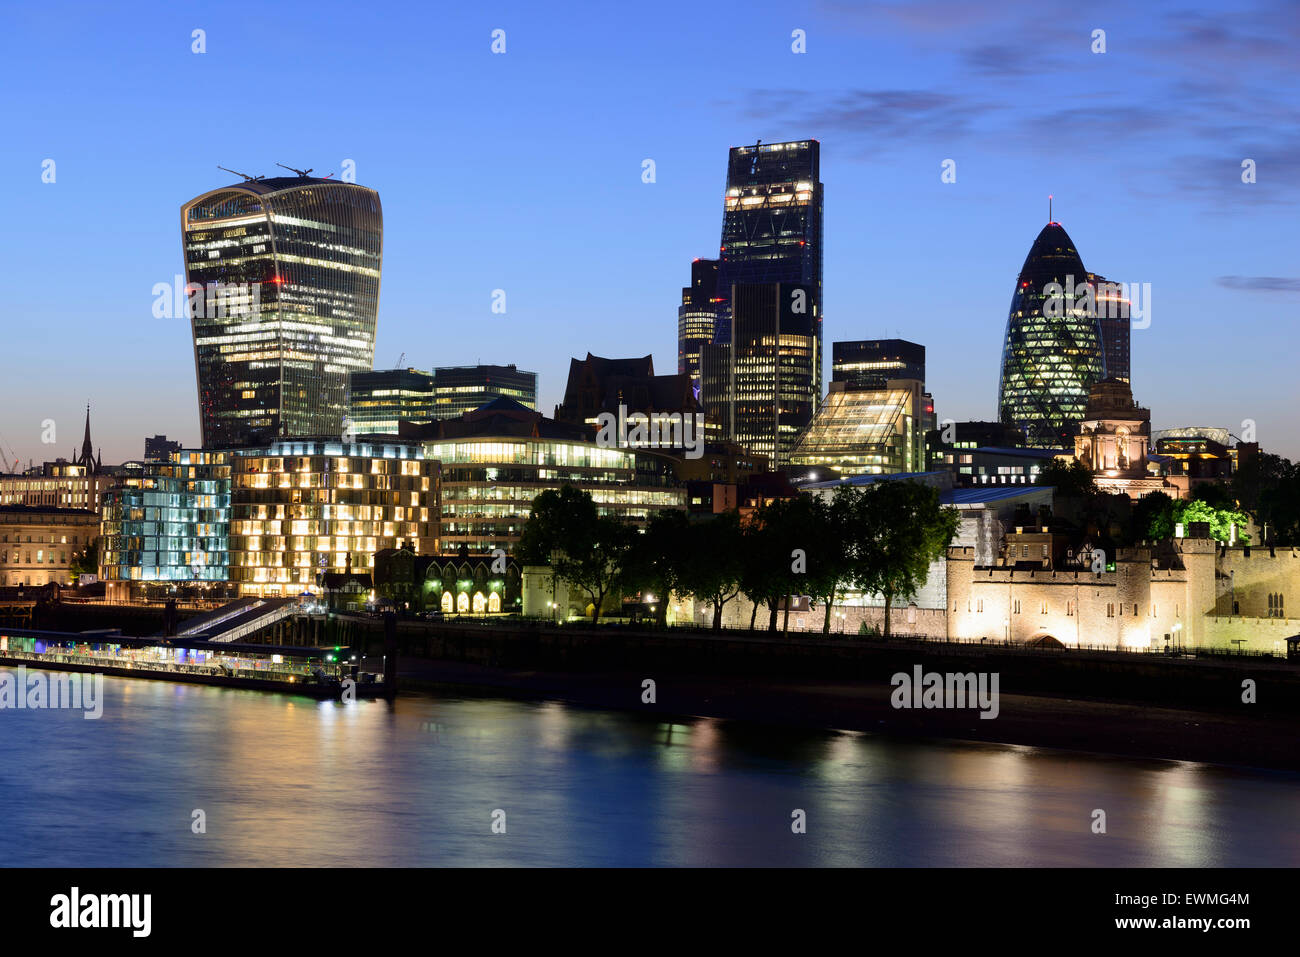 City centre with skyscrapers, 20 Fenchurch Street, Leadenhall Building and 30 St Mary Axe or The Gherkin, Thames, - Stock Image